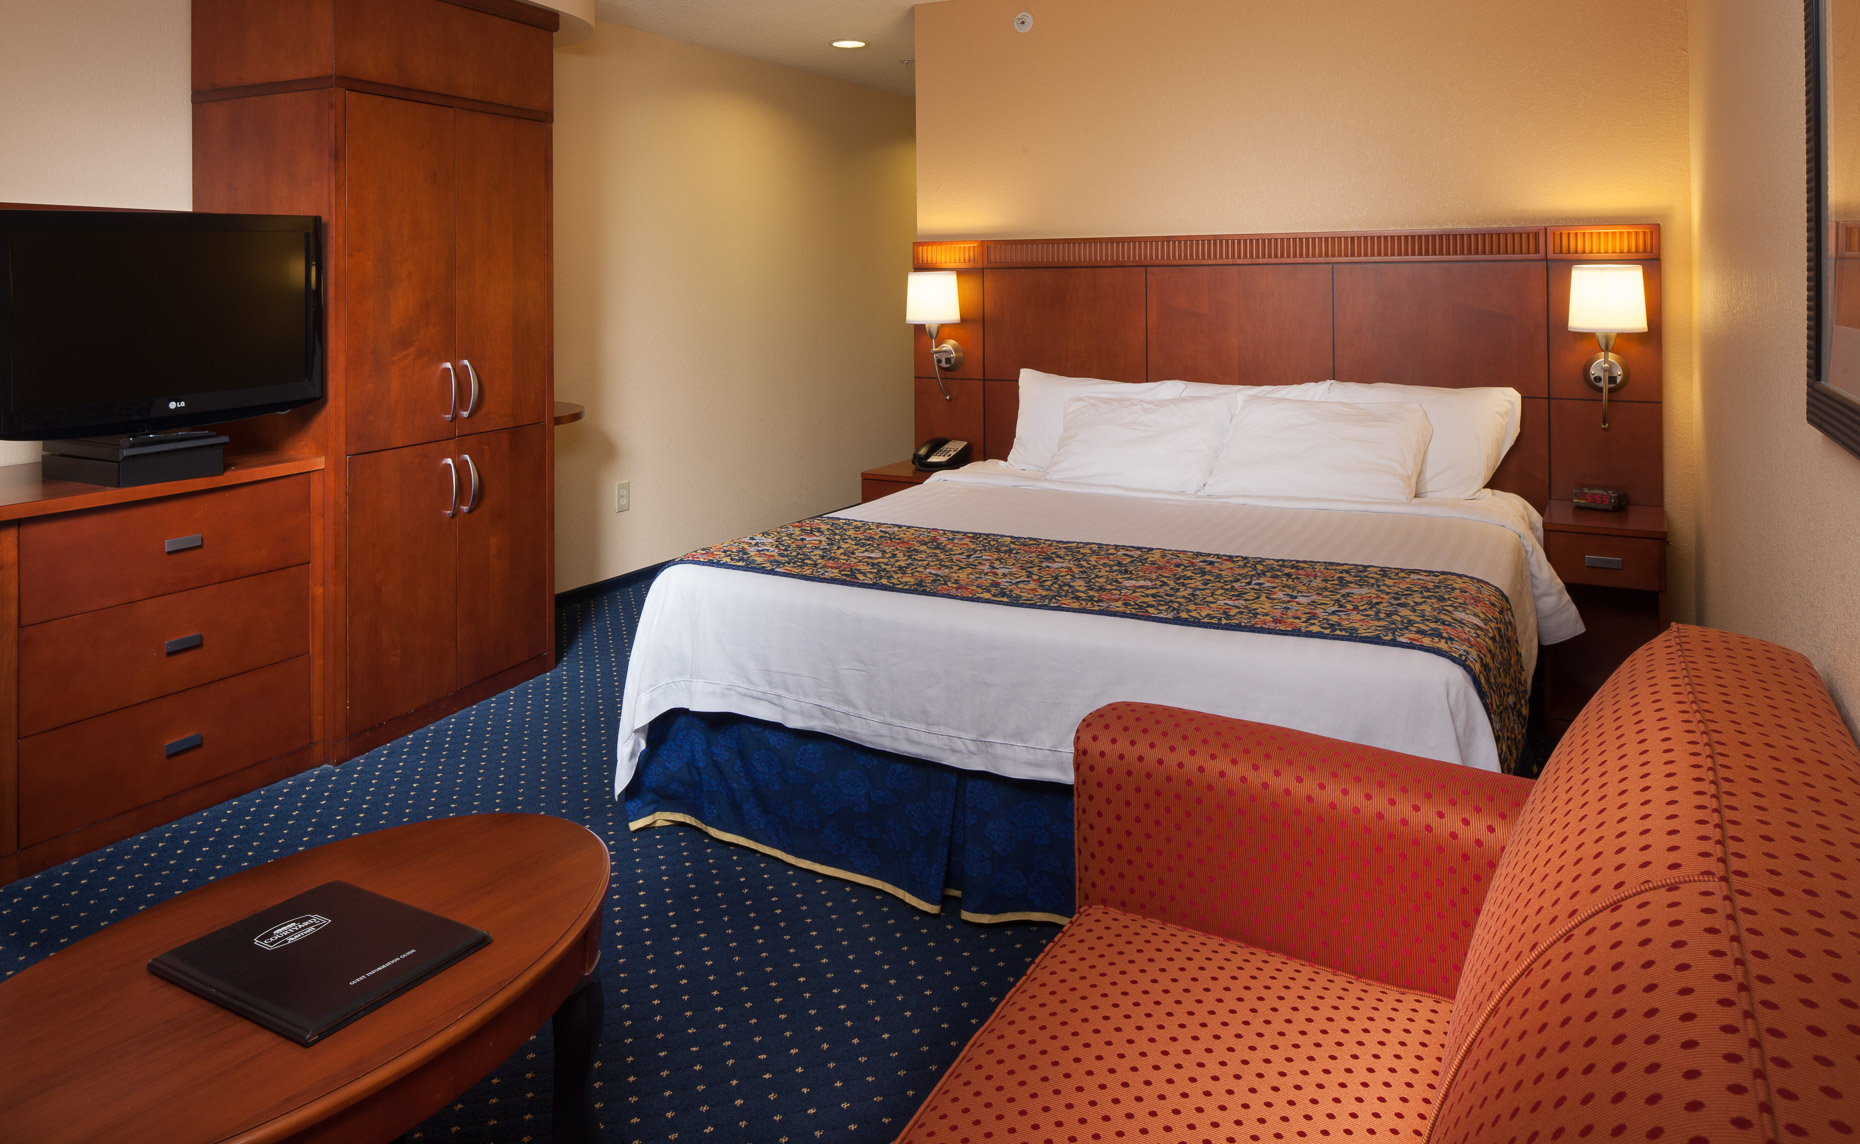 Courtyard Marriott Guest Room - Mark Borosch Photography - Prattville, AL